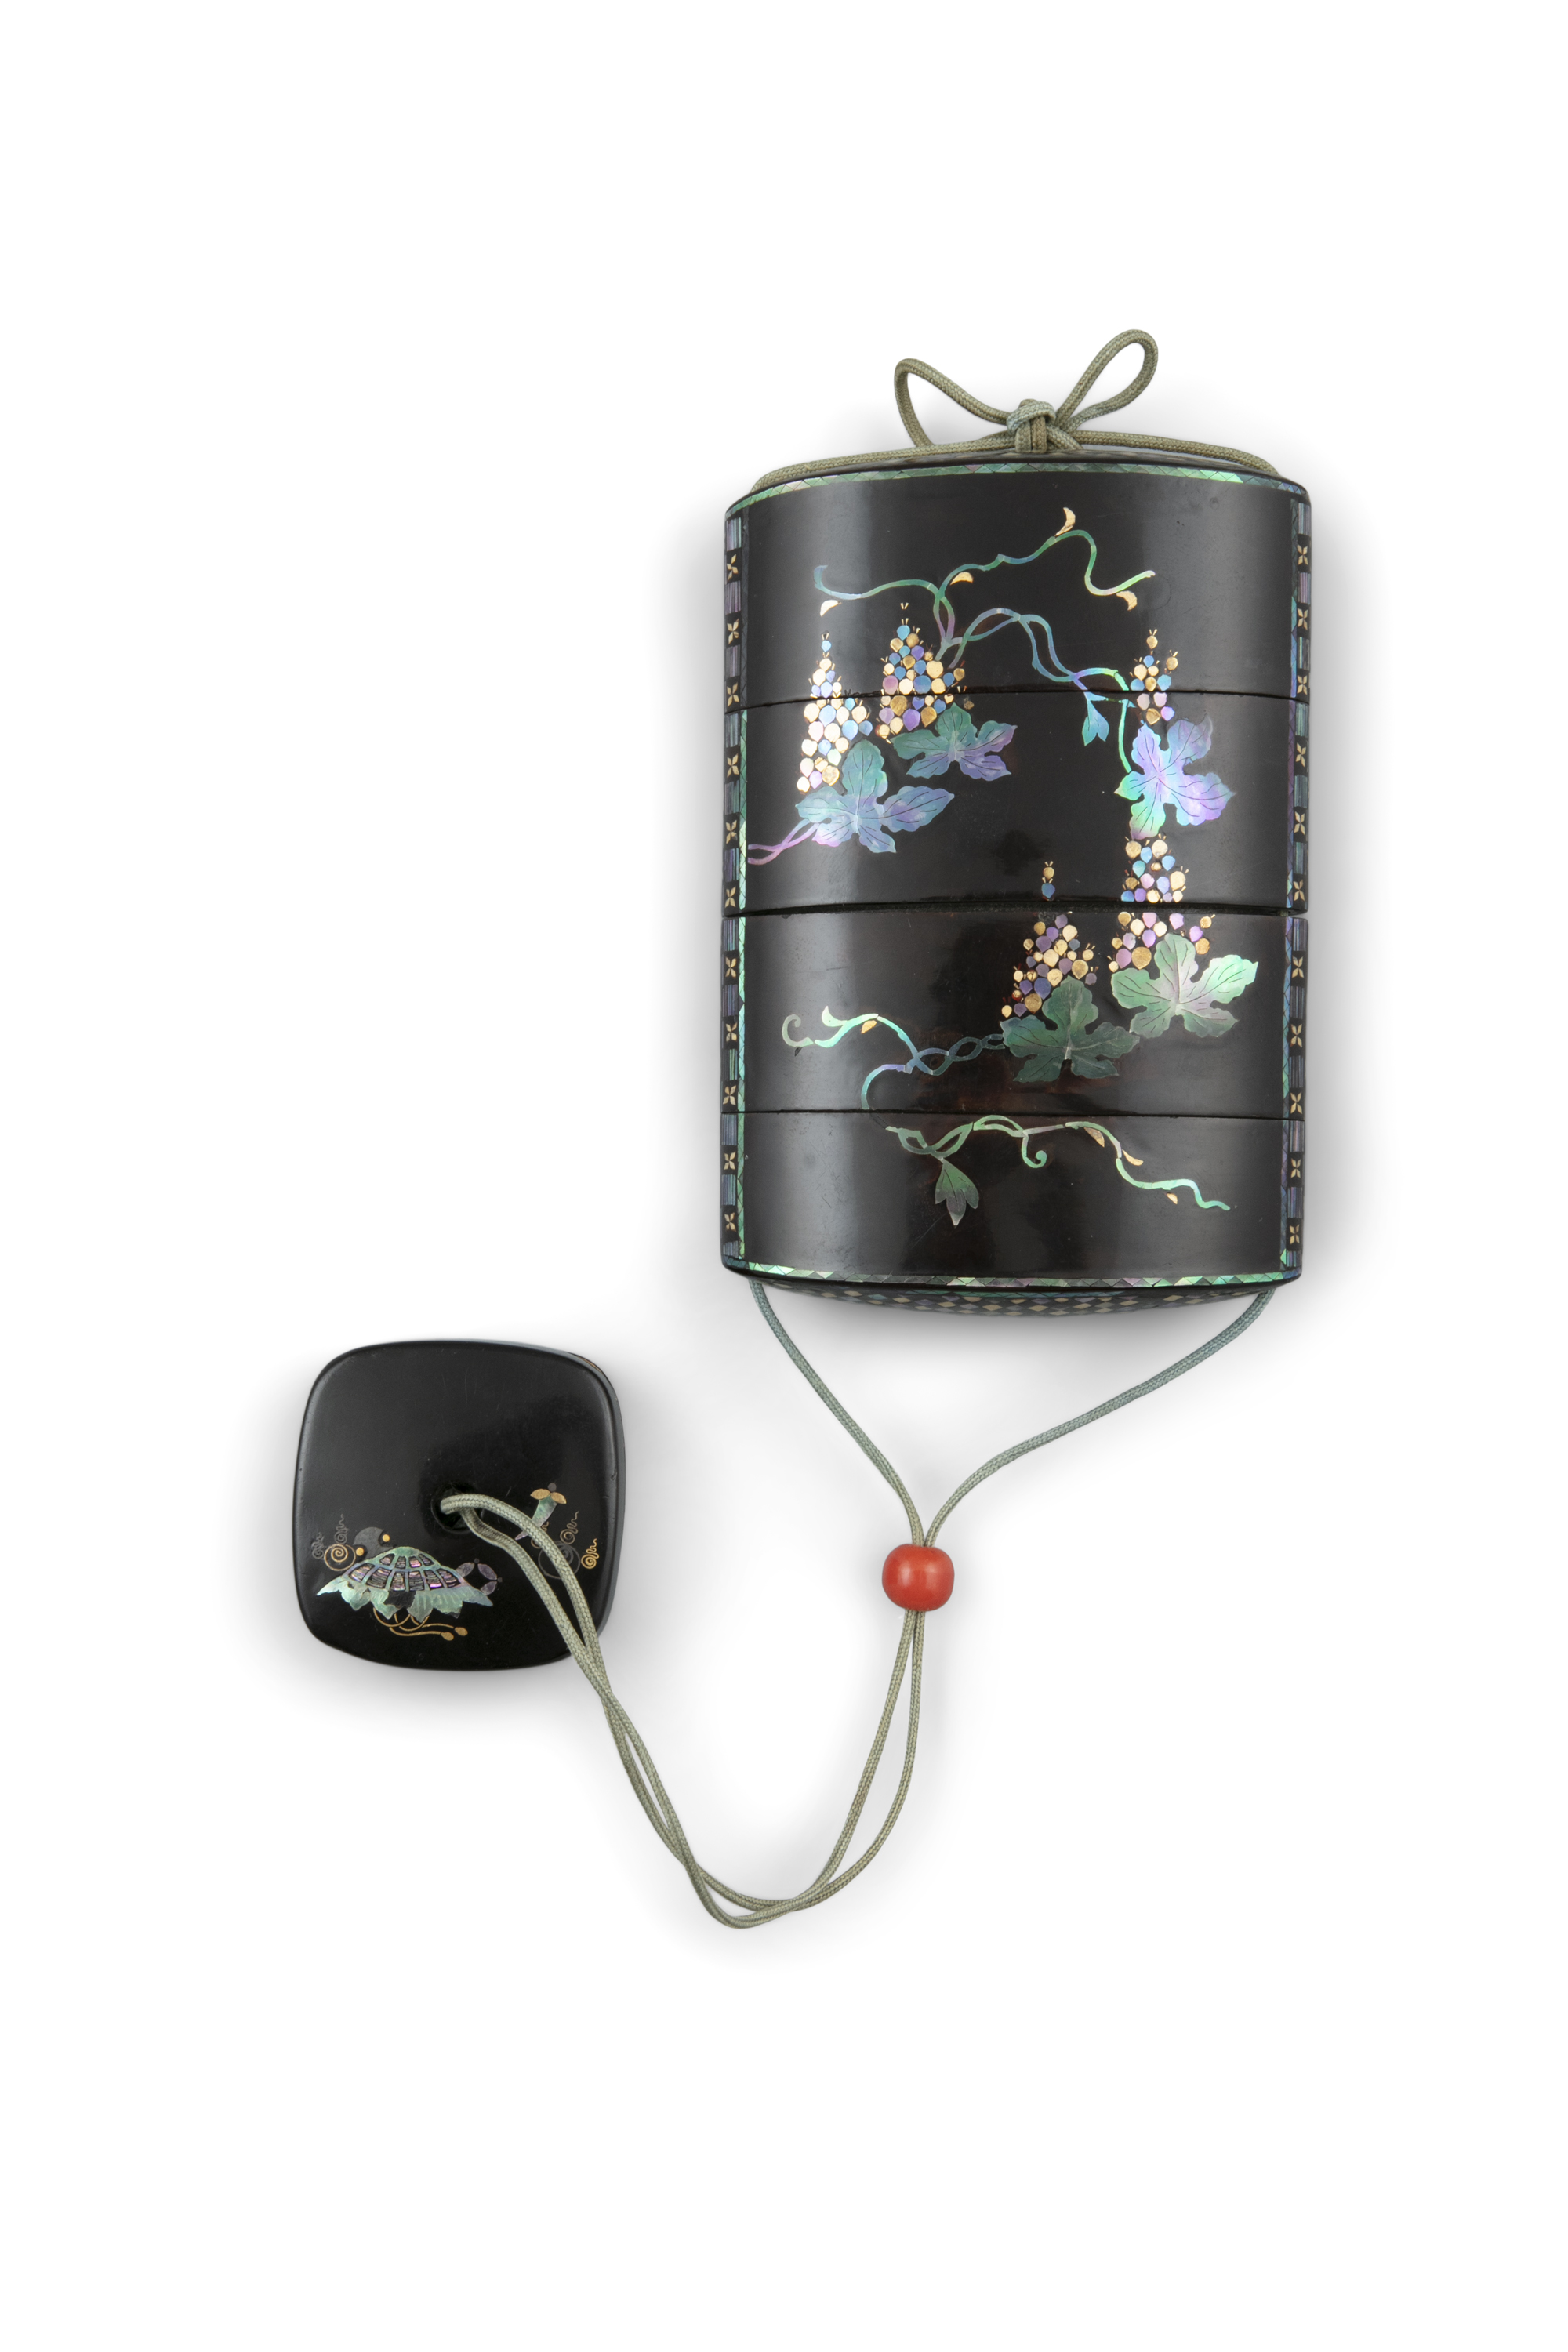 *A MOTHER-OF-PEARL INLAYS FOUR-COMPARTMENT ROIRO LACQUER INRO Japan, Showa period With nice